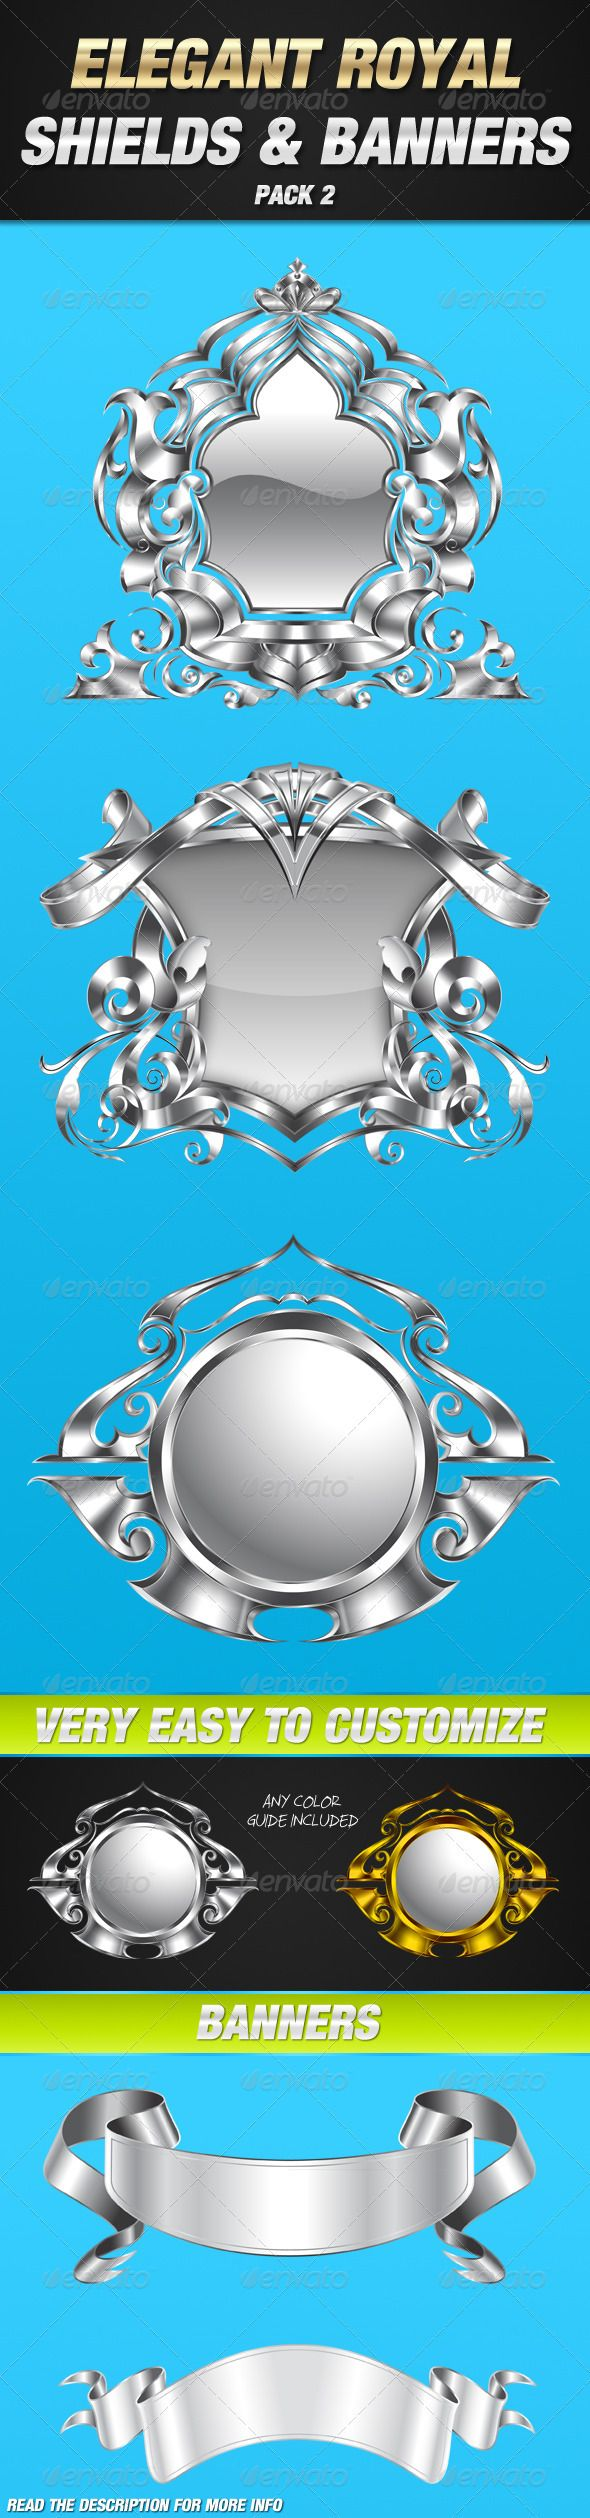 Elegant royal frame with crown vector colourbox - Royal Shield And Banner Pack 2